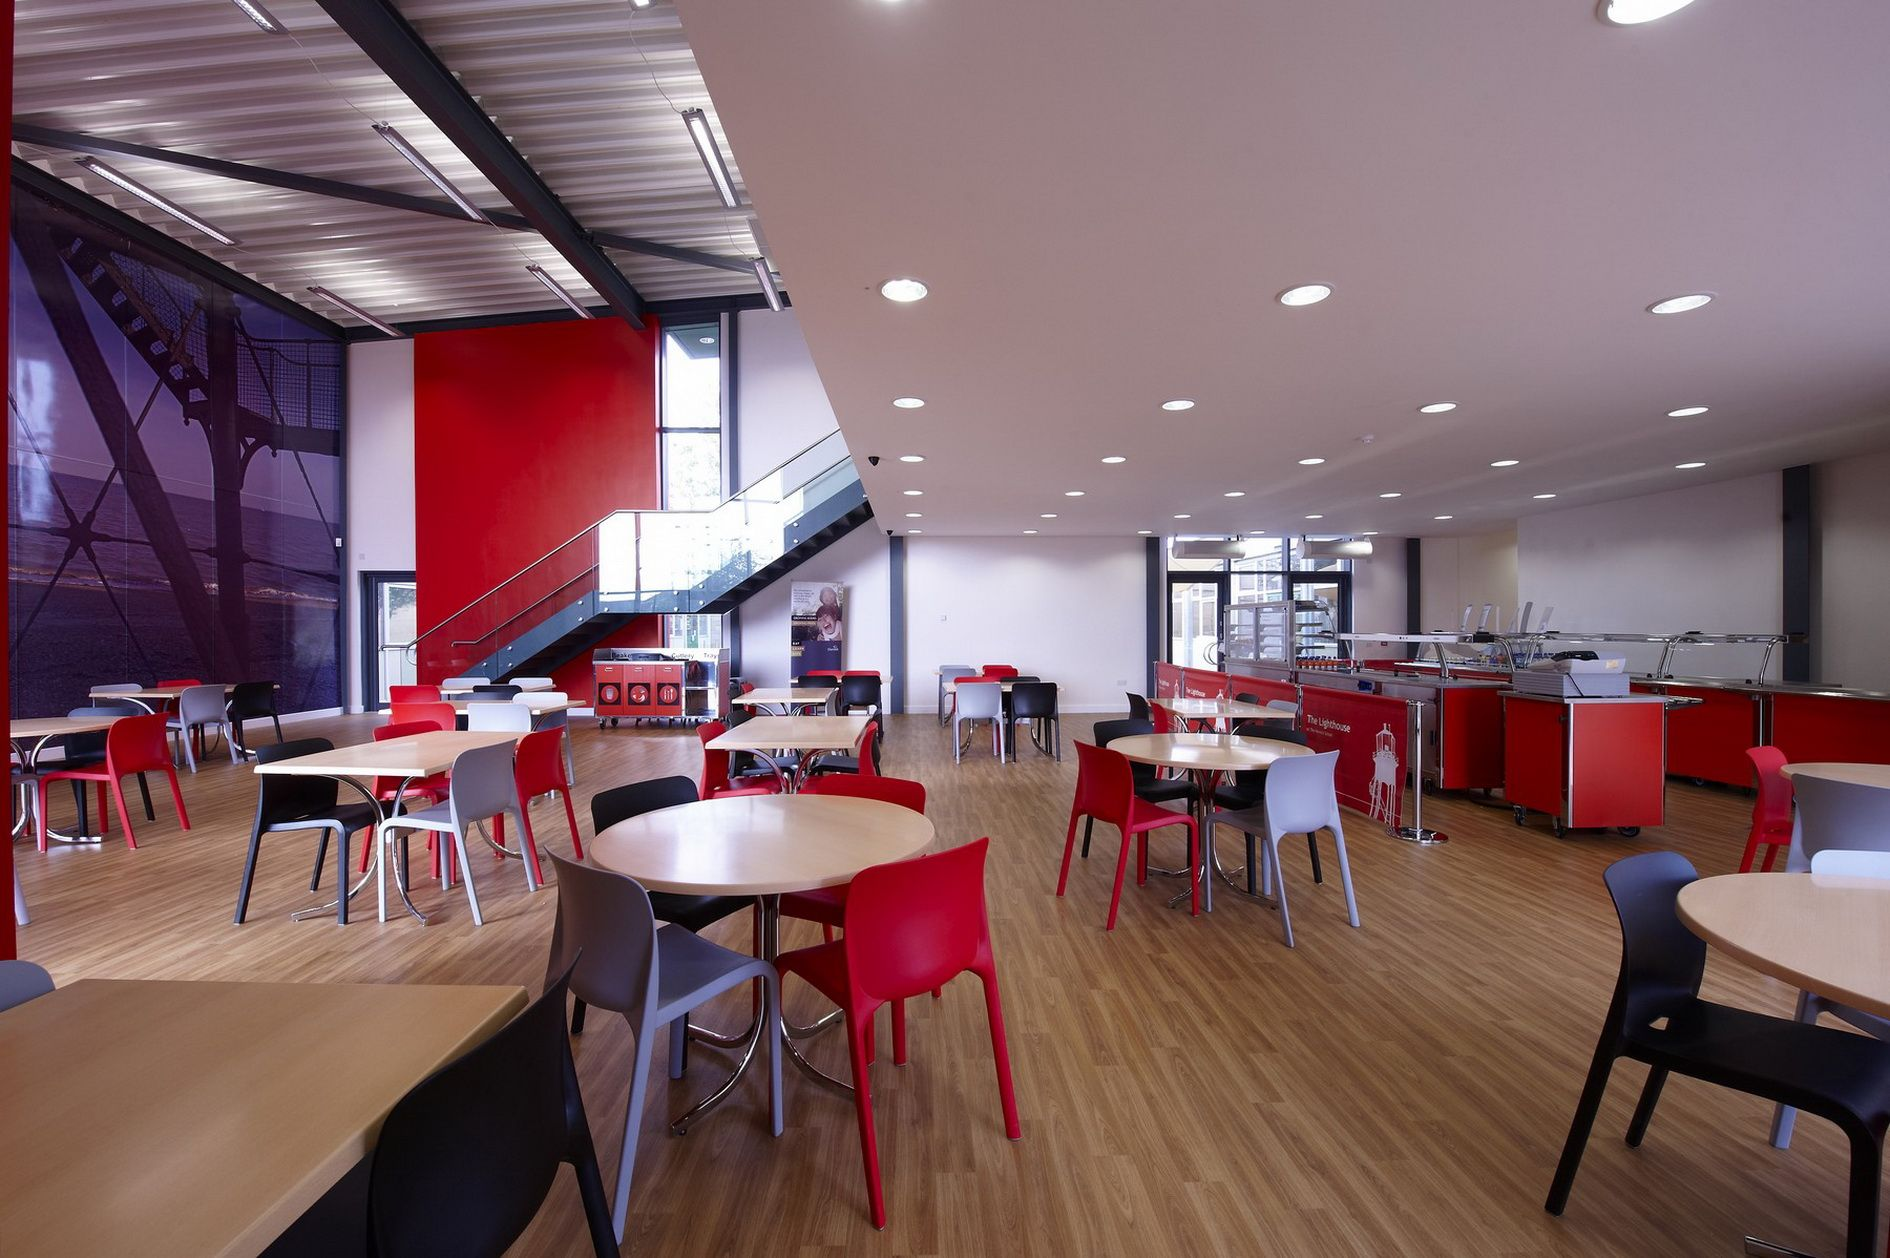 Modern school canteen interior design desain interior for Designs of the interior